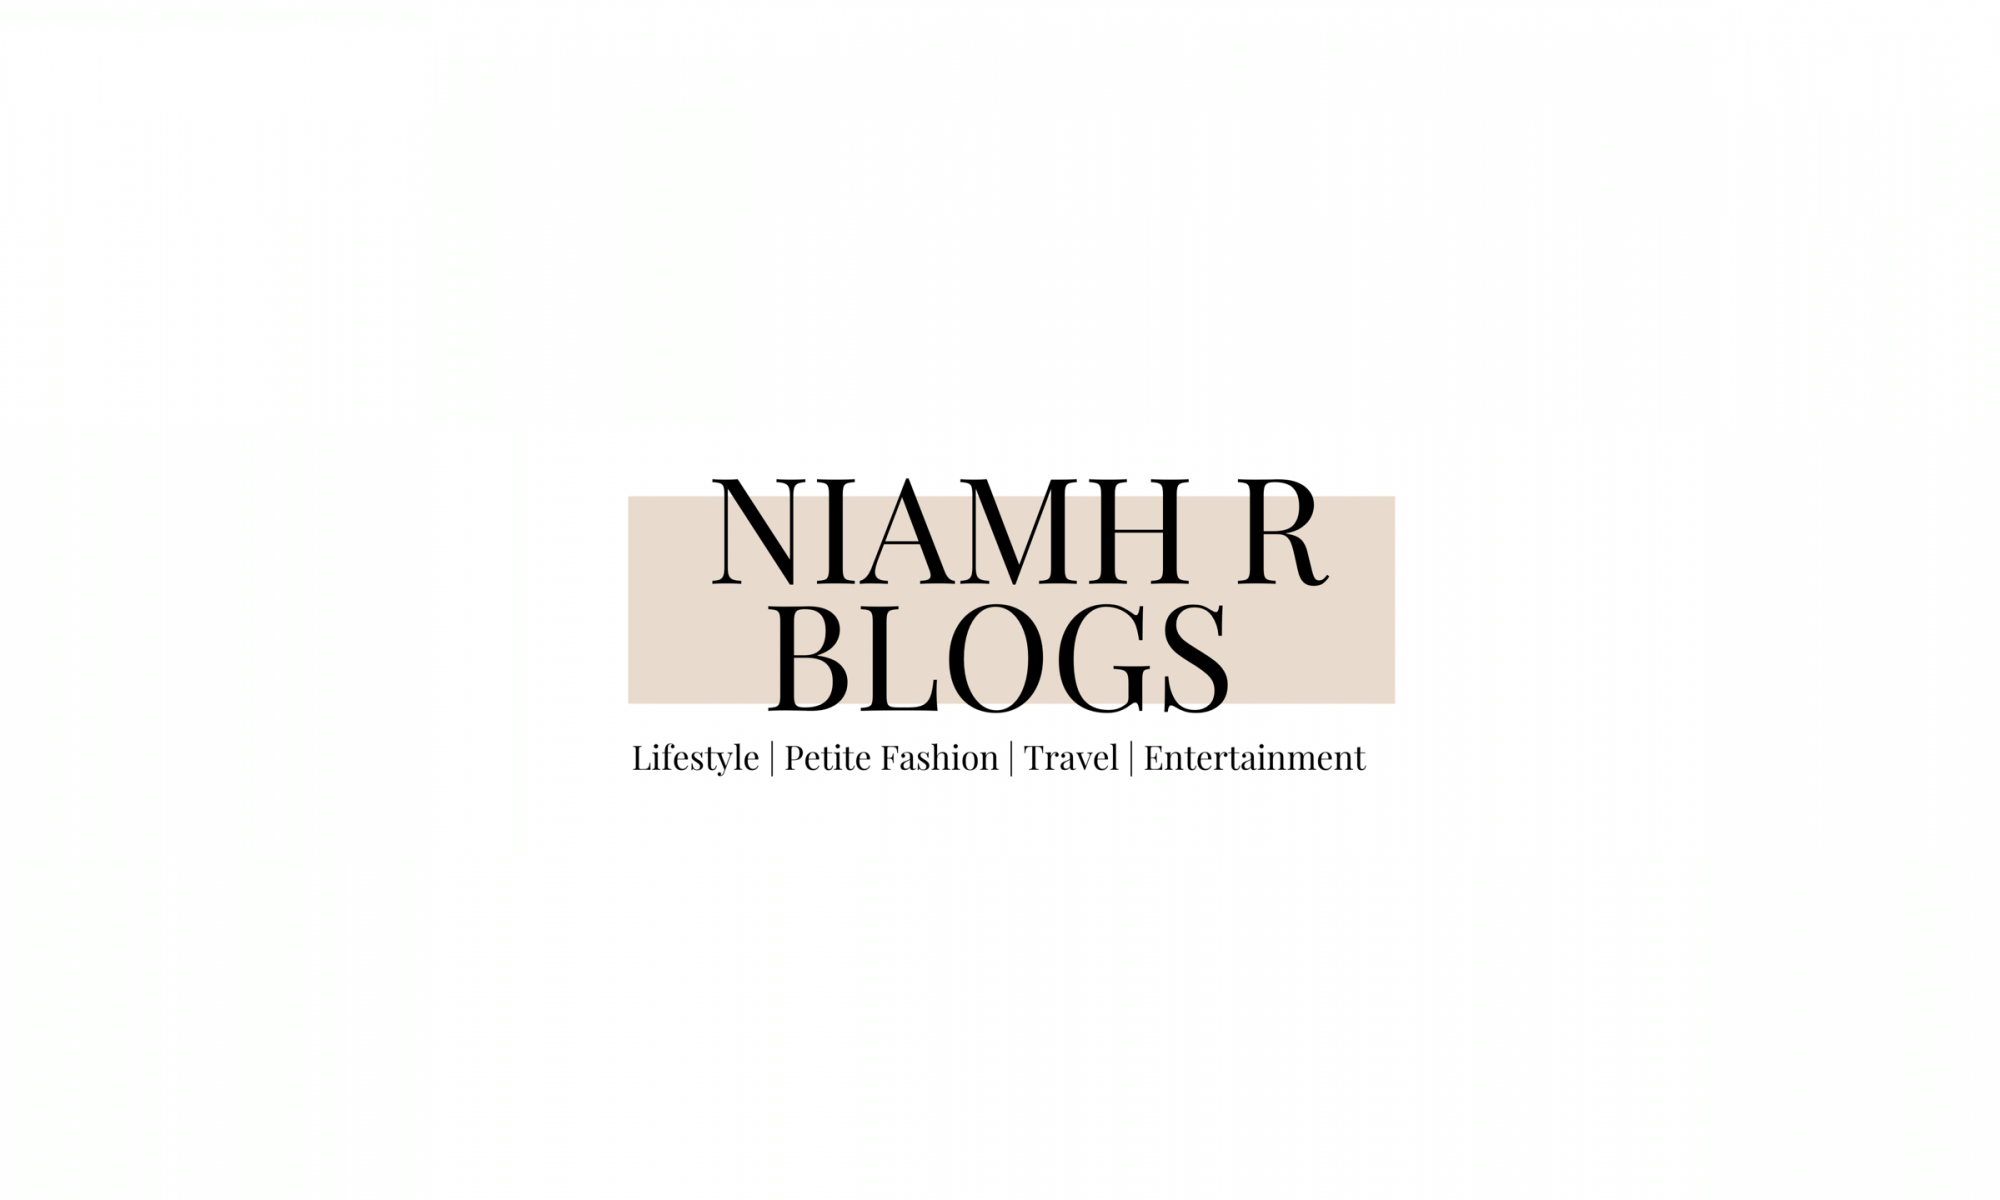 Niamh R Blogs